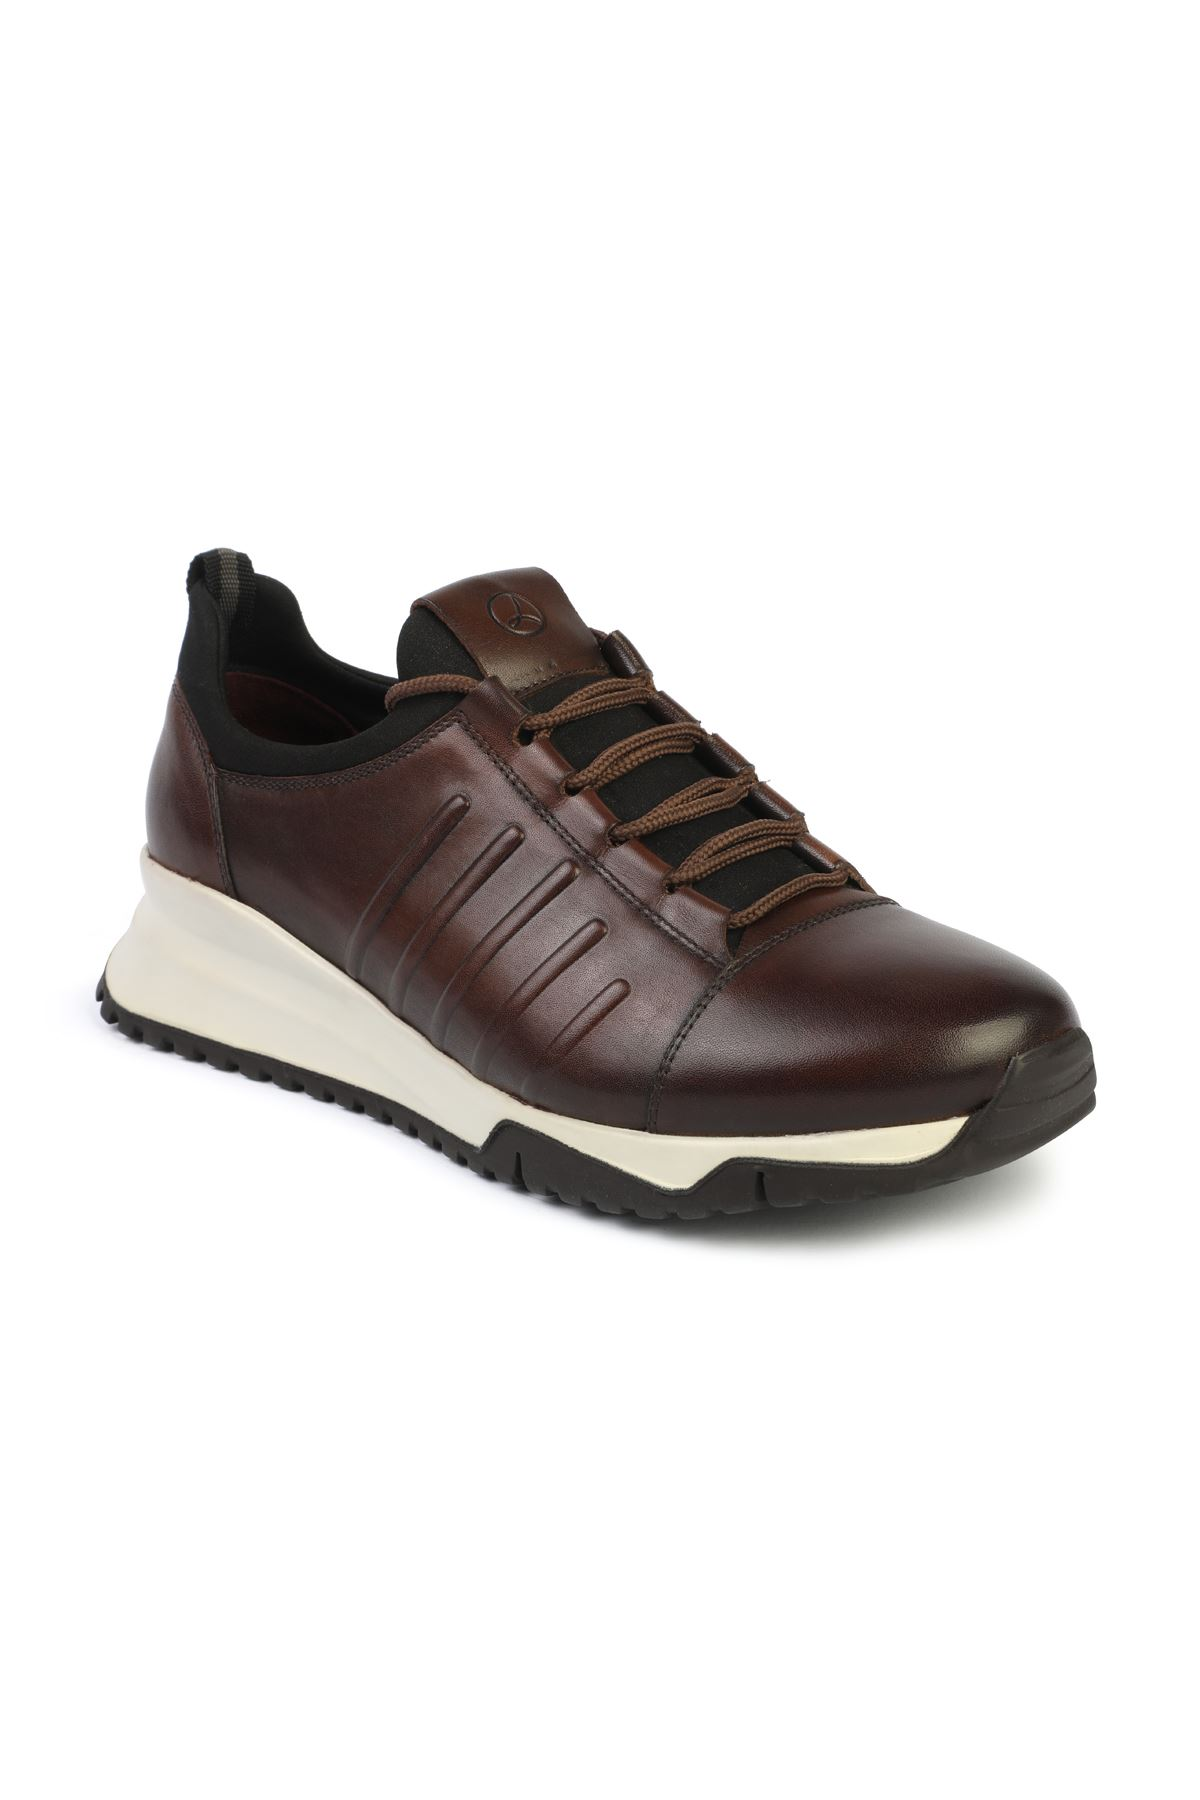 Libero 3157 Brown Sports Shoes